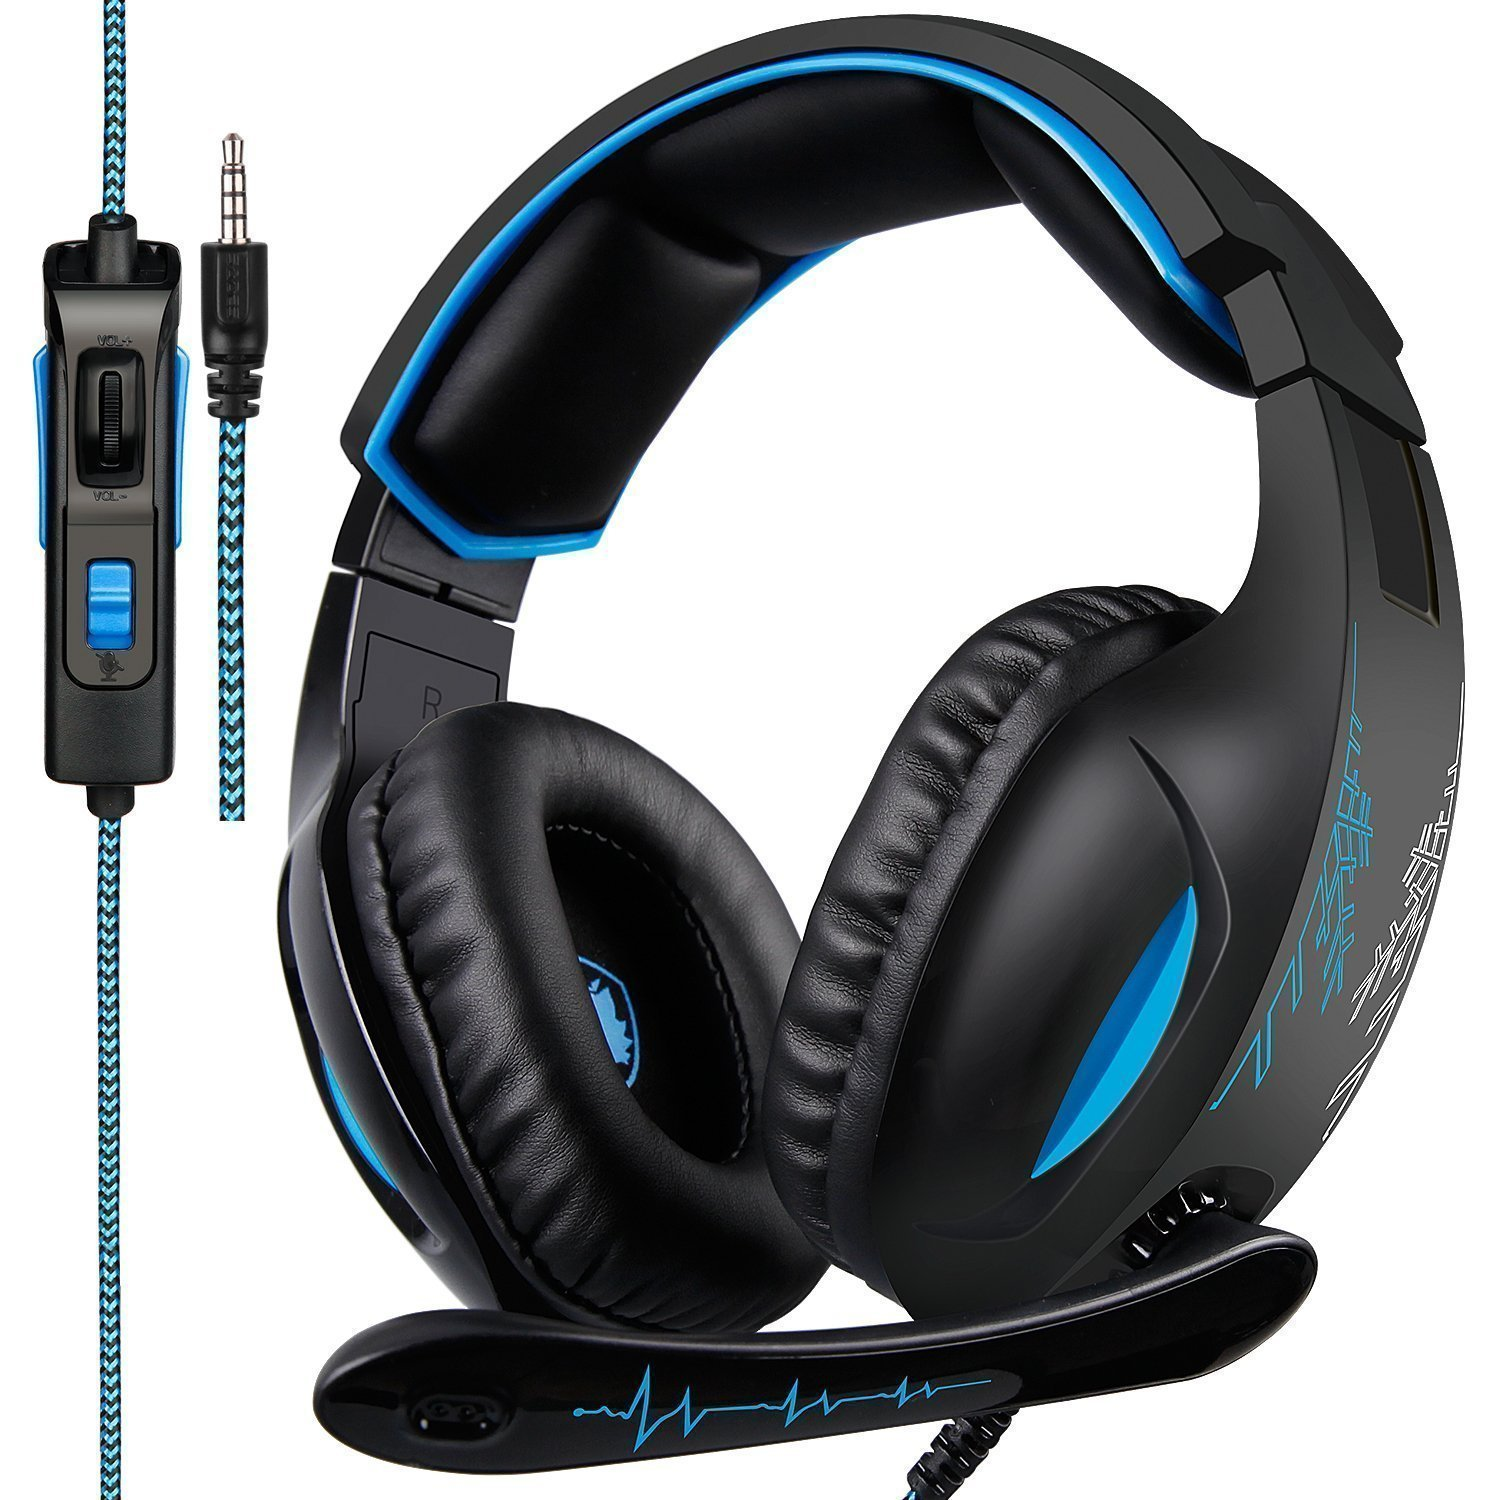 SADES SA816 Gaming Headset for PS4, Xbox One,PC, Controller, Over Ear Bass Surround Headphones with Noise Cancelling Mic, Soft Memory Earmuffs for PlayStation 4 Computer Mac Laptop Nintendo Switch Gam